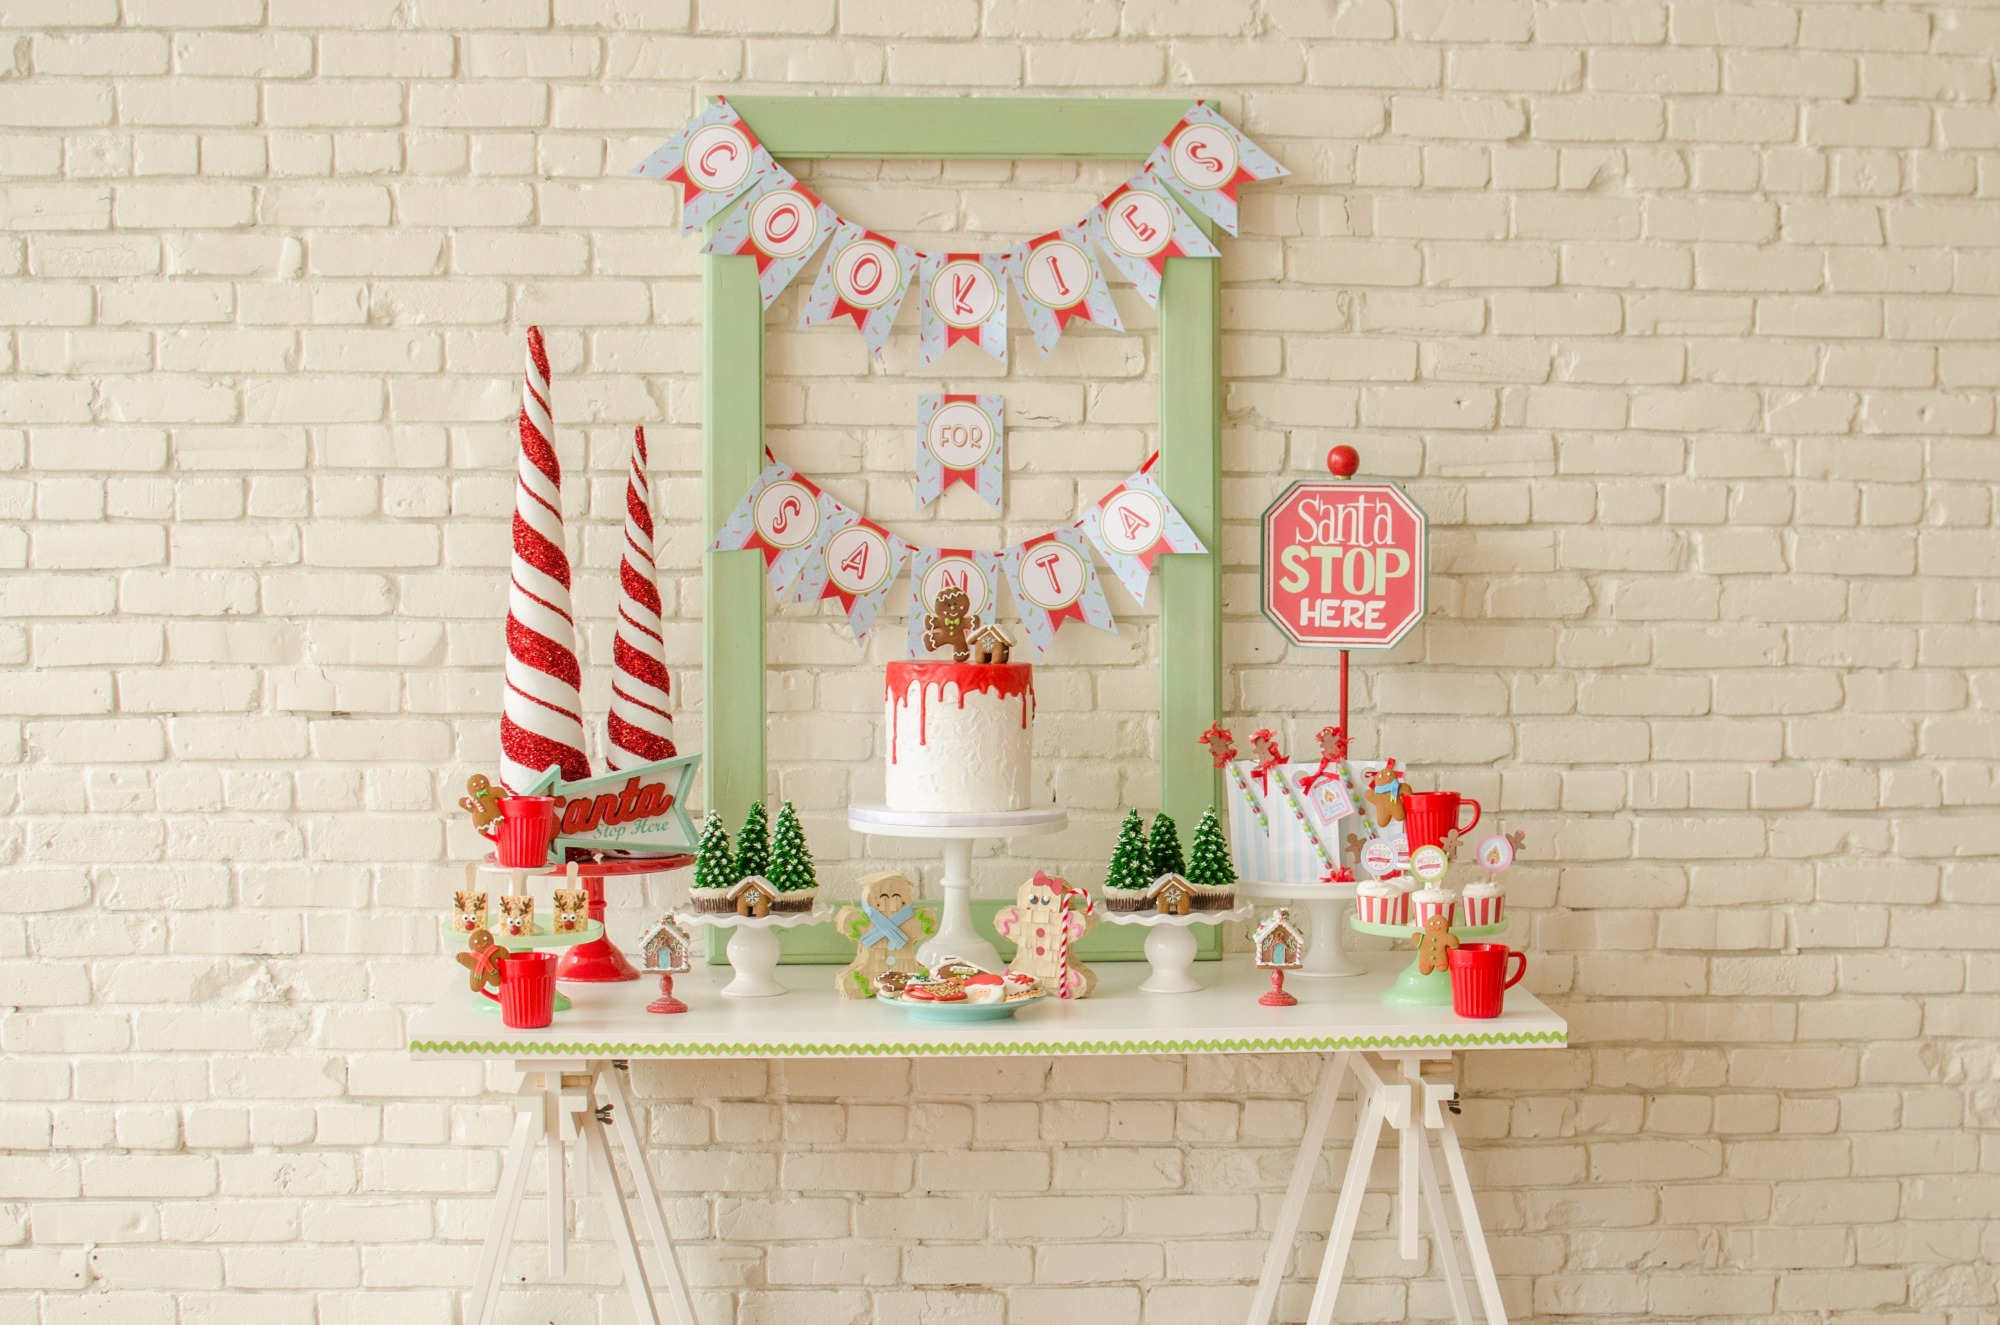 Dessert Table from Cookies for Santa Party by Mint Event Design | Black Twine